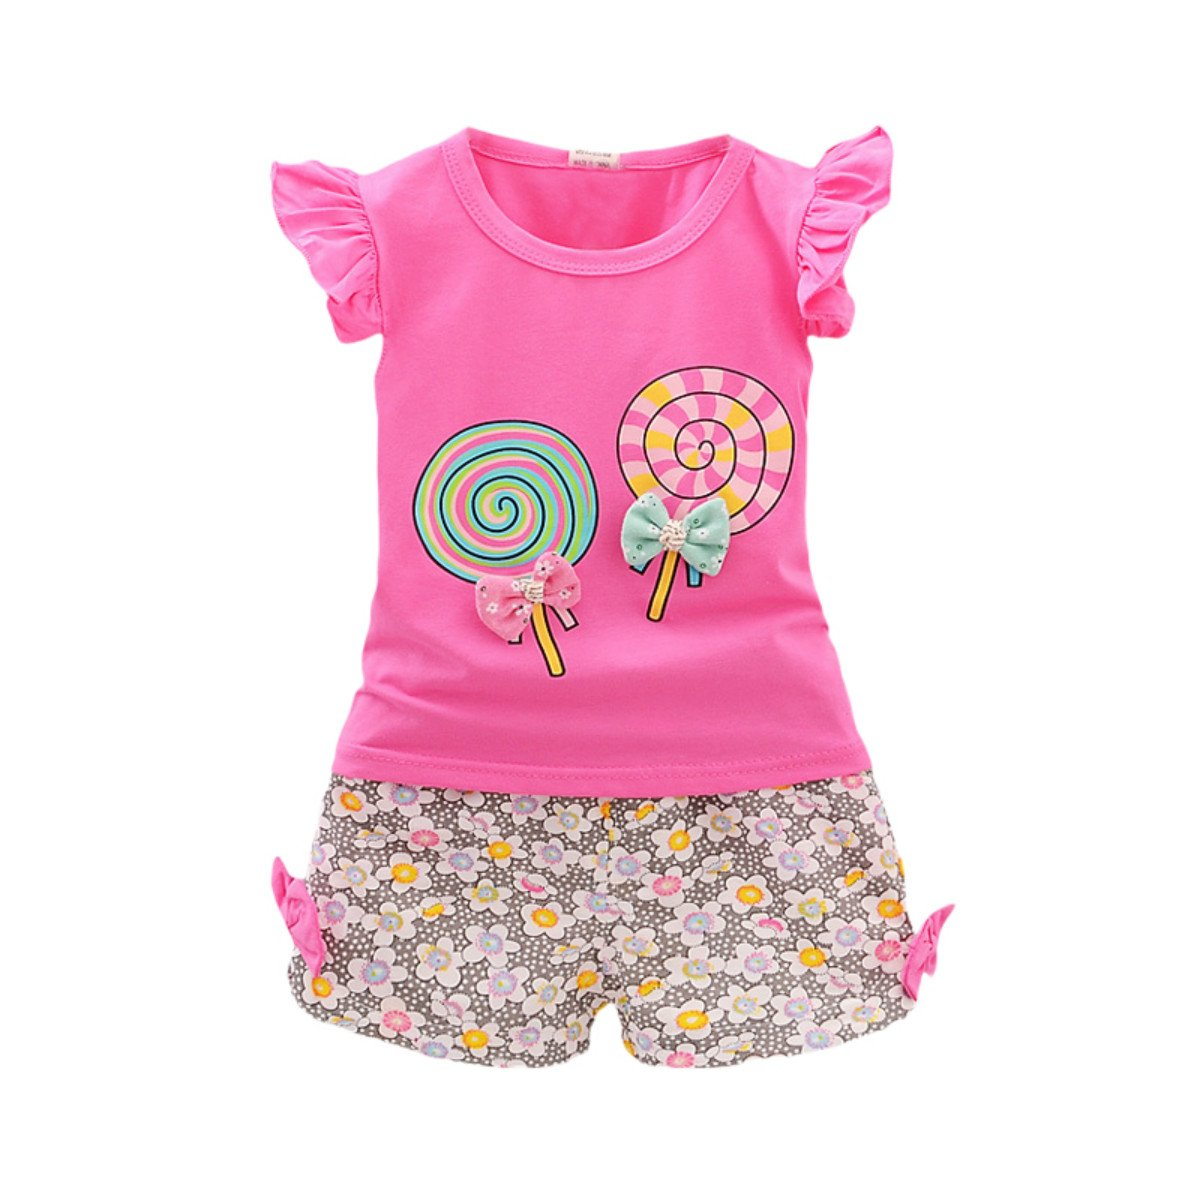 Younger Tree 2PCS Toddler Kids Baby Girls Outfits Lollipop Print T-Shirt Tops+Short Pants Set